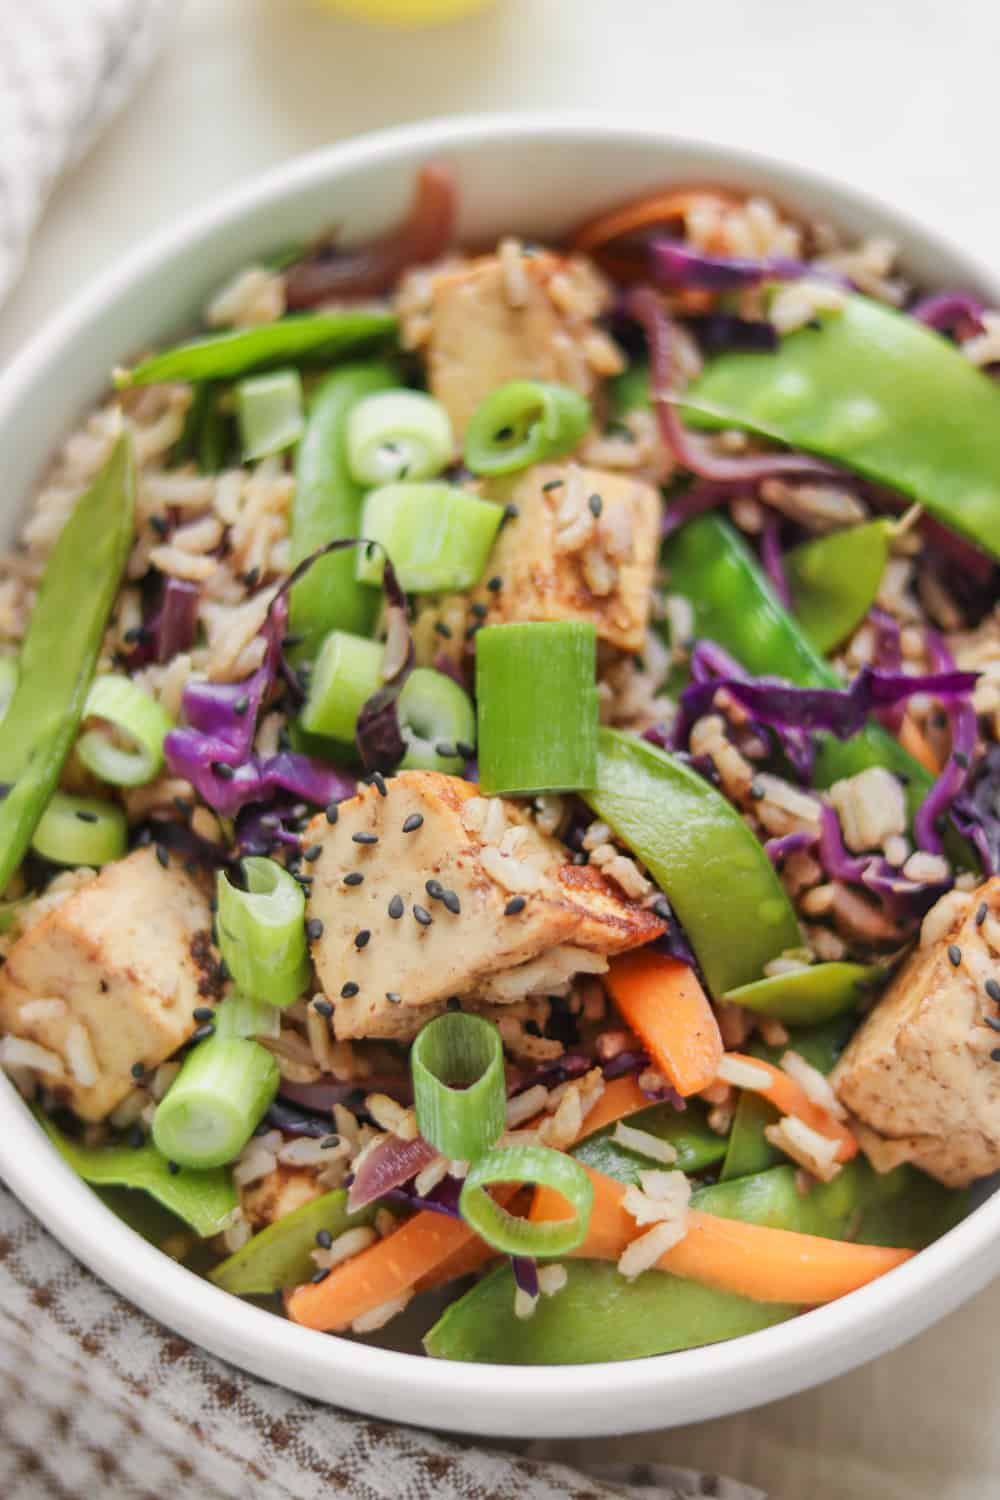 Vegan stir-fry bowl with tofu, vegetables and rice